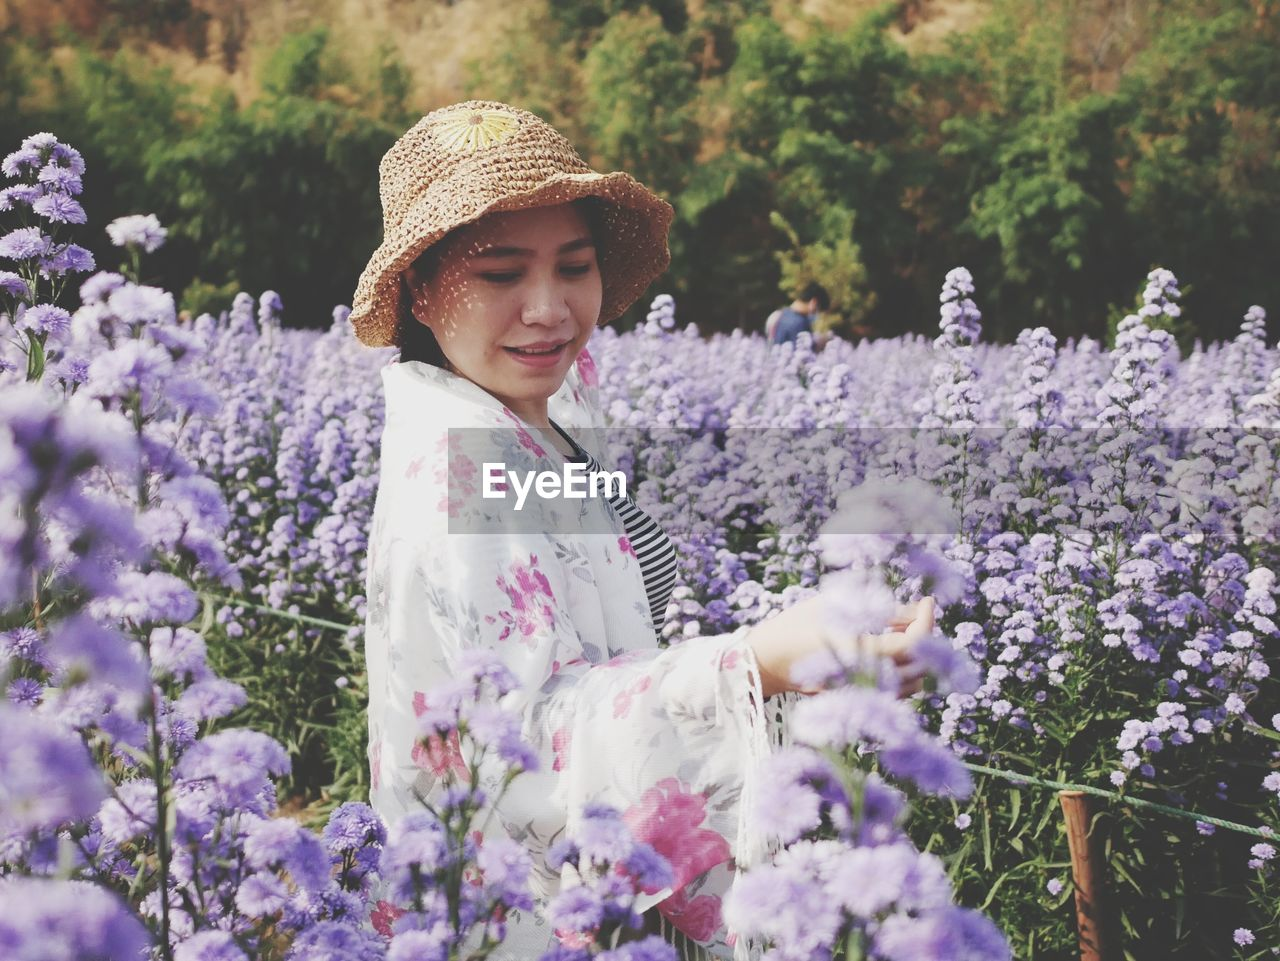 Young woman wearing hat standing amidst flowering plants